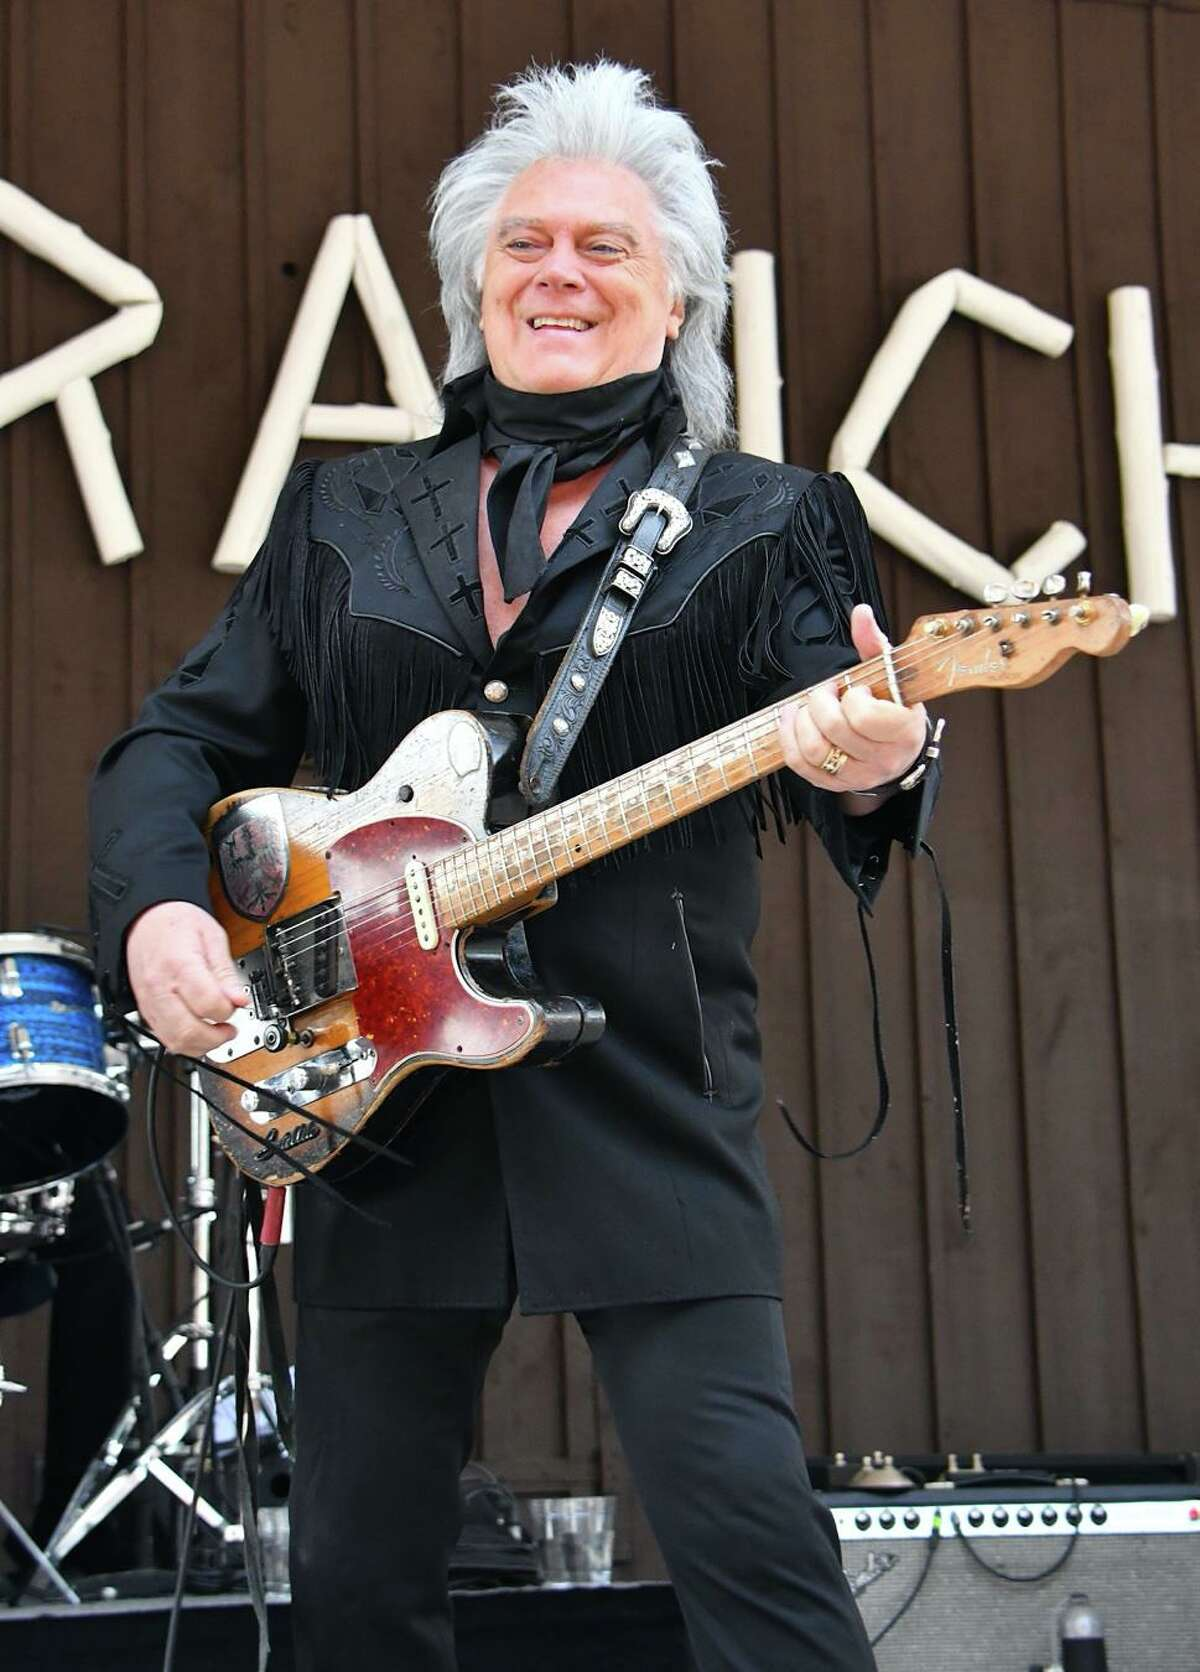 """Singer, songwriter and musician Marty Stuart is shown performing on stage during his July 31 concert at Indian Ranch. Stuart has been active since 1968, and initially toured with Lester Flatt, and then in Johnny Cash's road band before beginning work as a solo artist in the early 1980s. His greatest commercial success came in the first half of the 1990s on MCA Records Nashville. He has recorded over 20 studio albums, and has charted over 30 times on the Billboard Hot Country Songs charts. His highest chart entry is """"The Whiskey Ain't Workin"""", a duet with Travis Tritt. Stuart has also won five Grammy Awards out of 16 nominations. He is known for his combination of rockabilly, country rock and bluegrass music influences, his frequent collaborations and cover songs, and his distinctive stage dress. Stuart is also a member of the Grand Ole Opry and the Country Music Hall of Fame. To learn more about Marty Stuart and his Fabulous Superlatives, visit www.martystuart.net"""